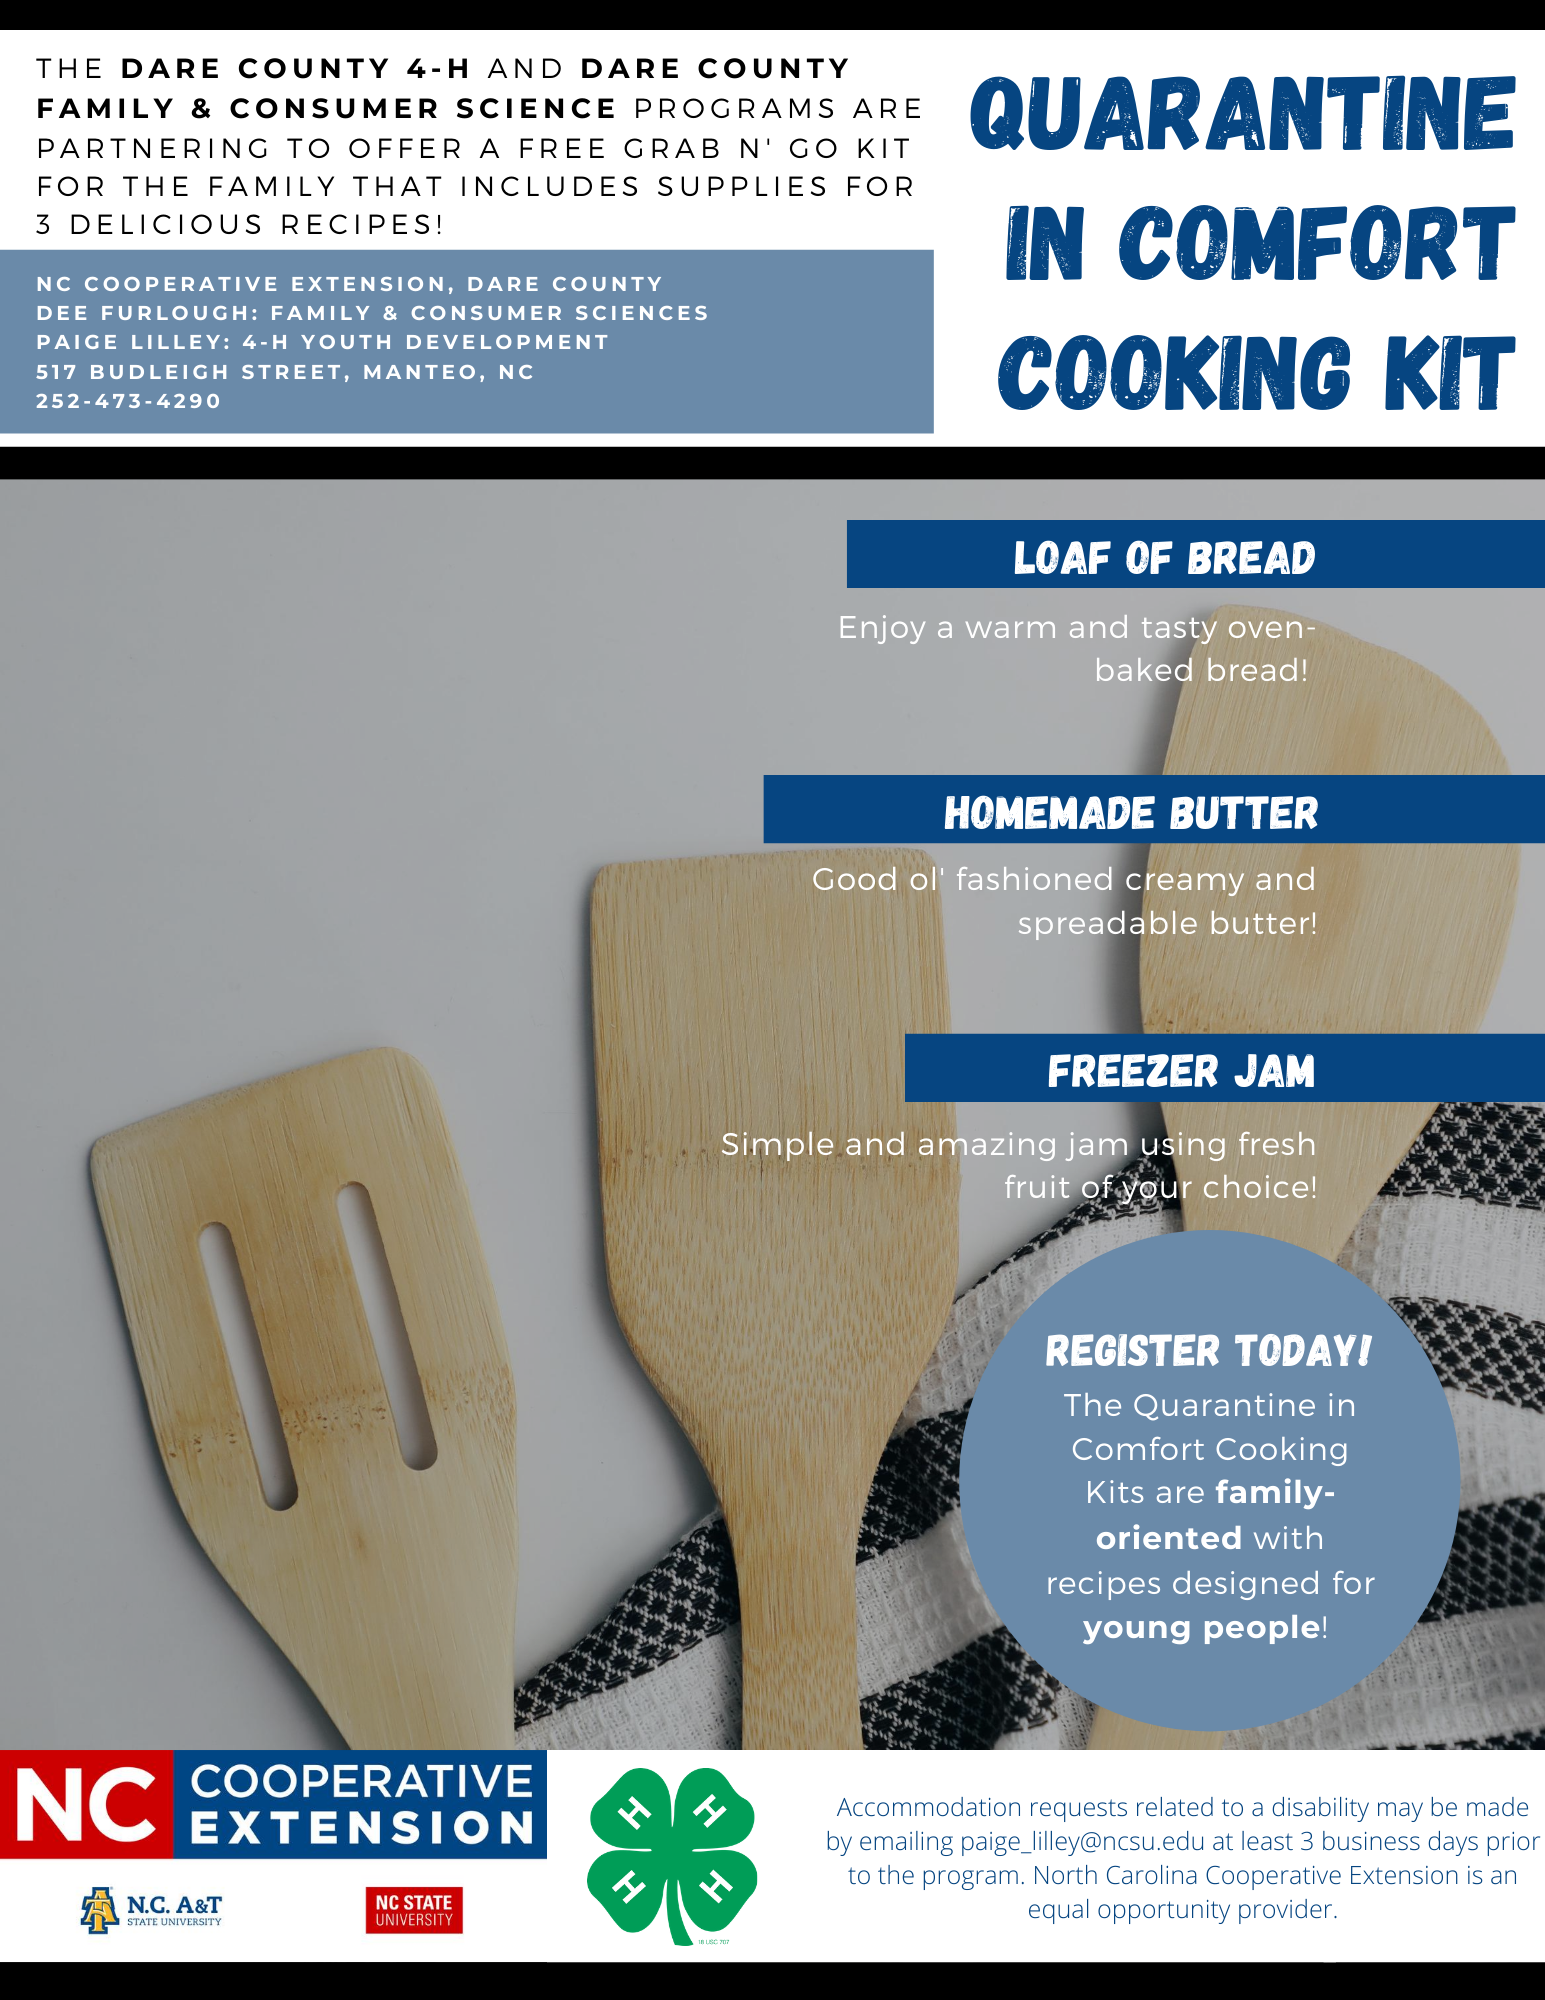 Comfort Cooking Kit